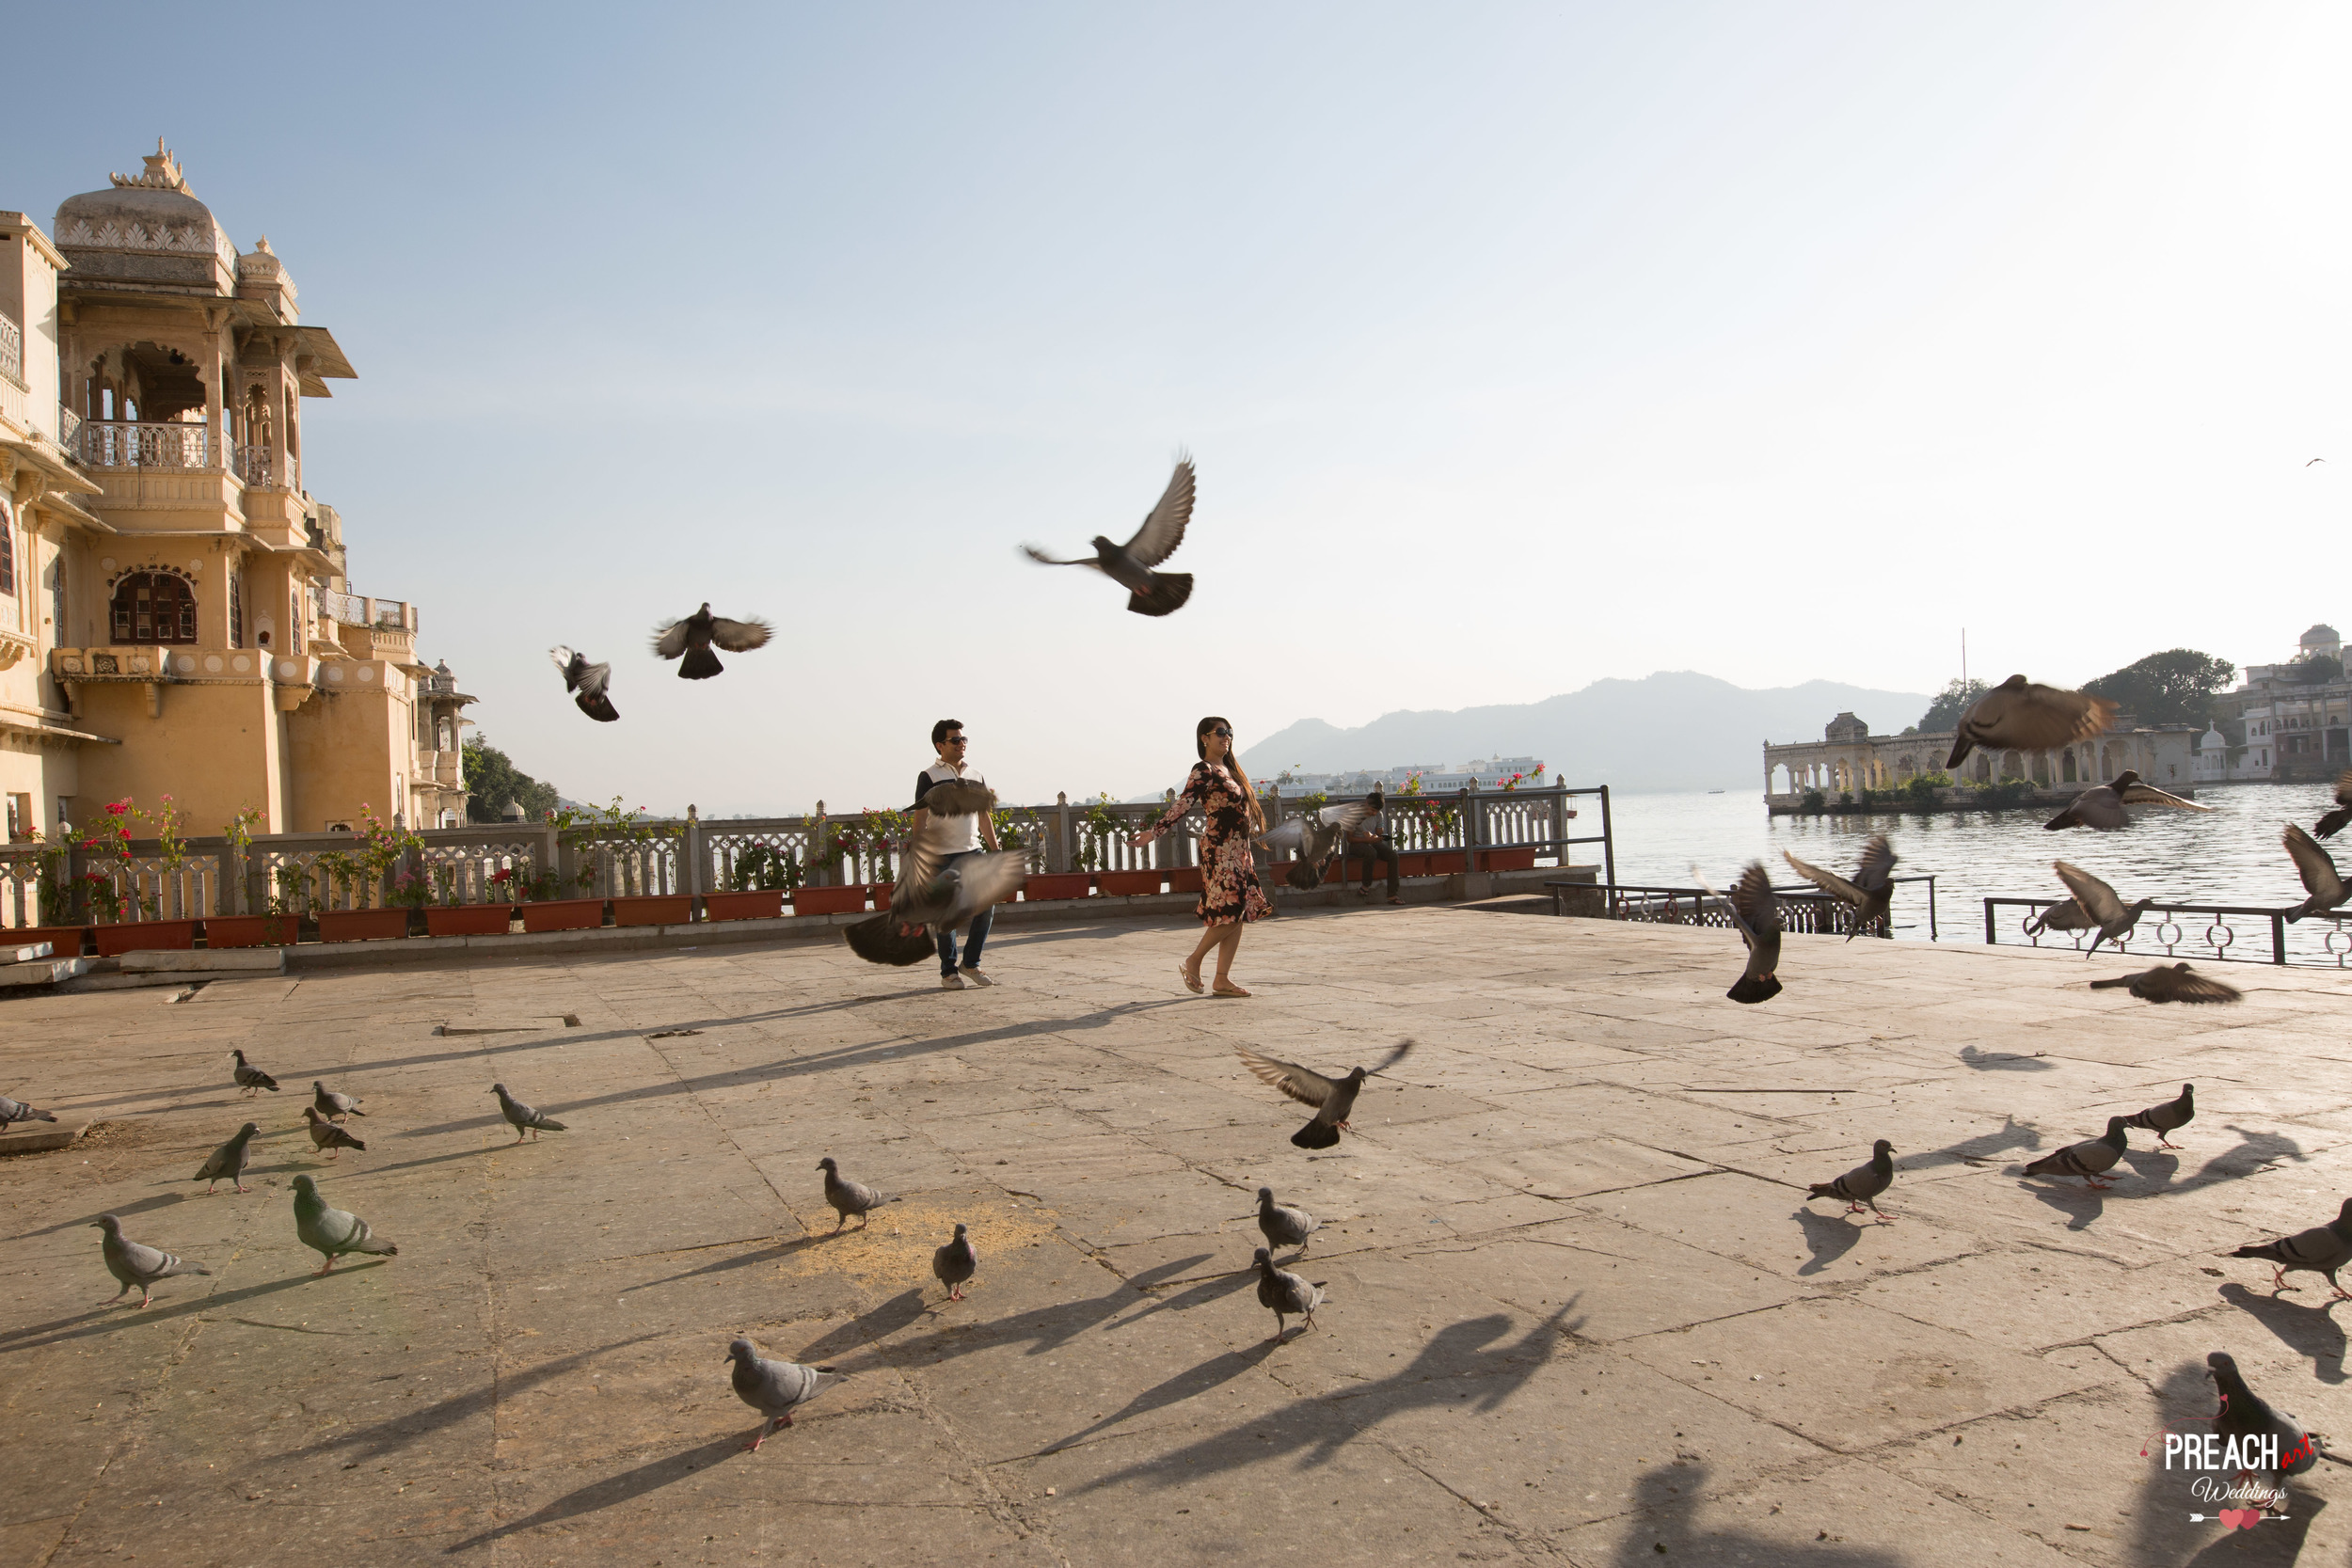 A&B_Udaipur Pre-wedding Shoot_PREACH ART-76.jpg